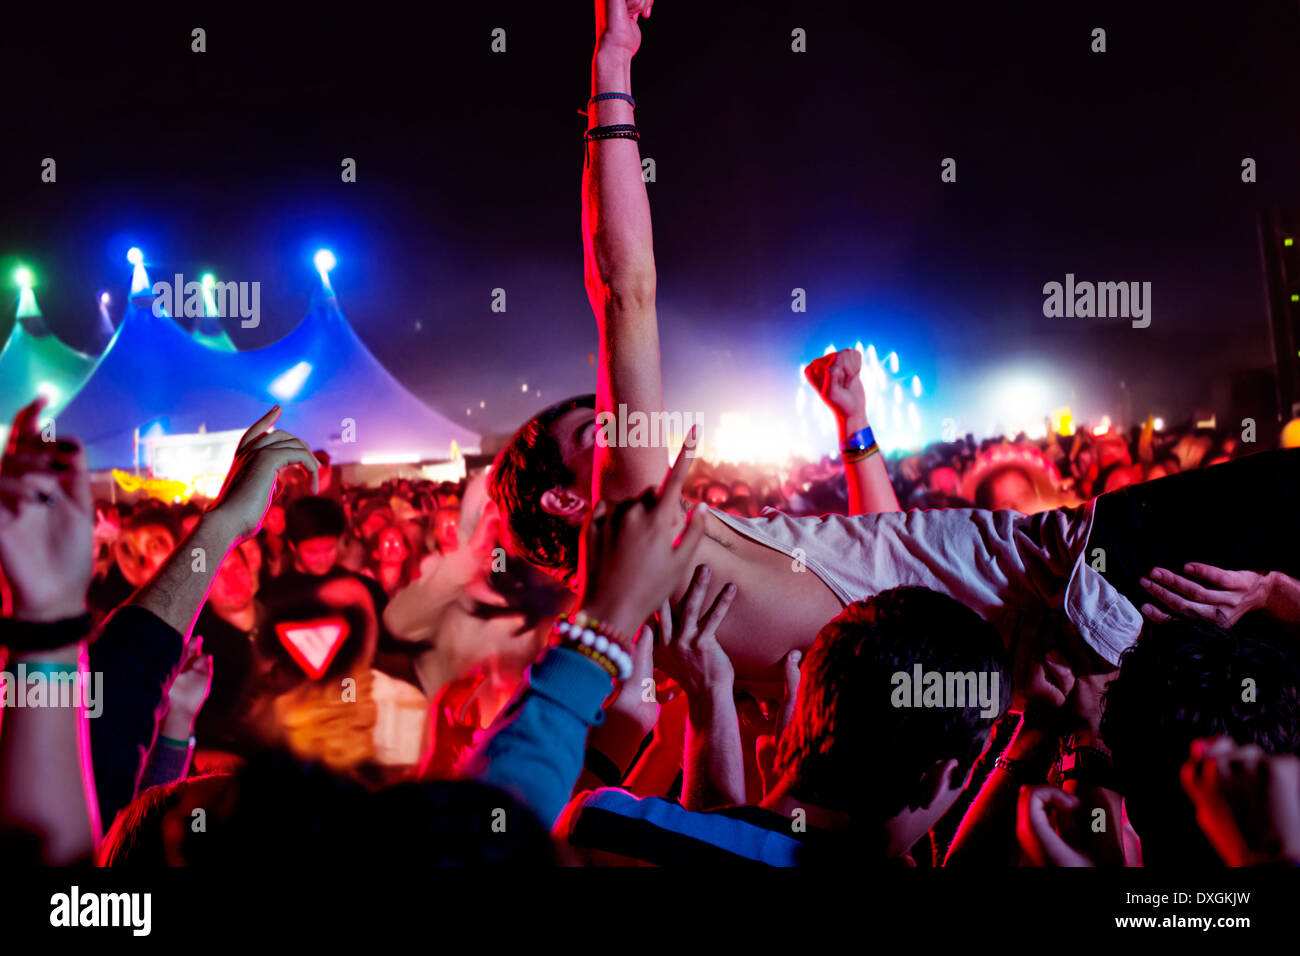 Man crowd surfing at music festival - Stock Image